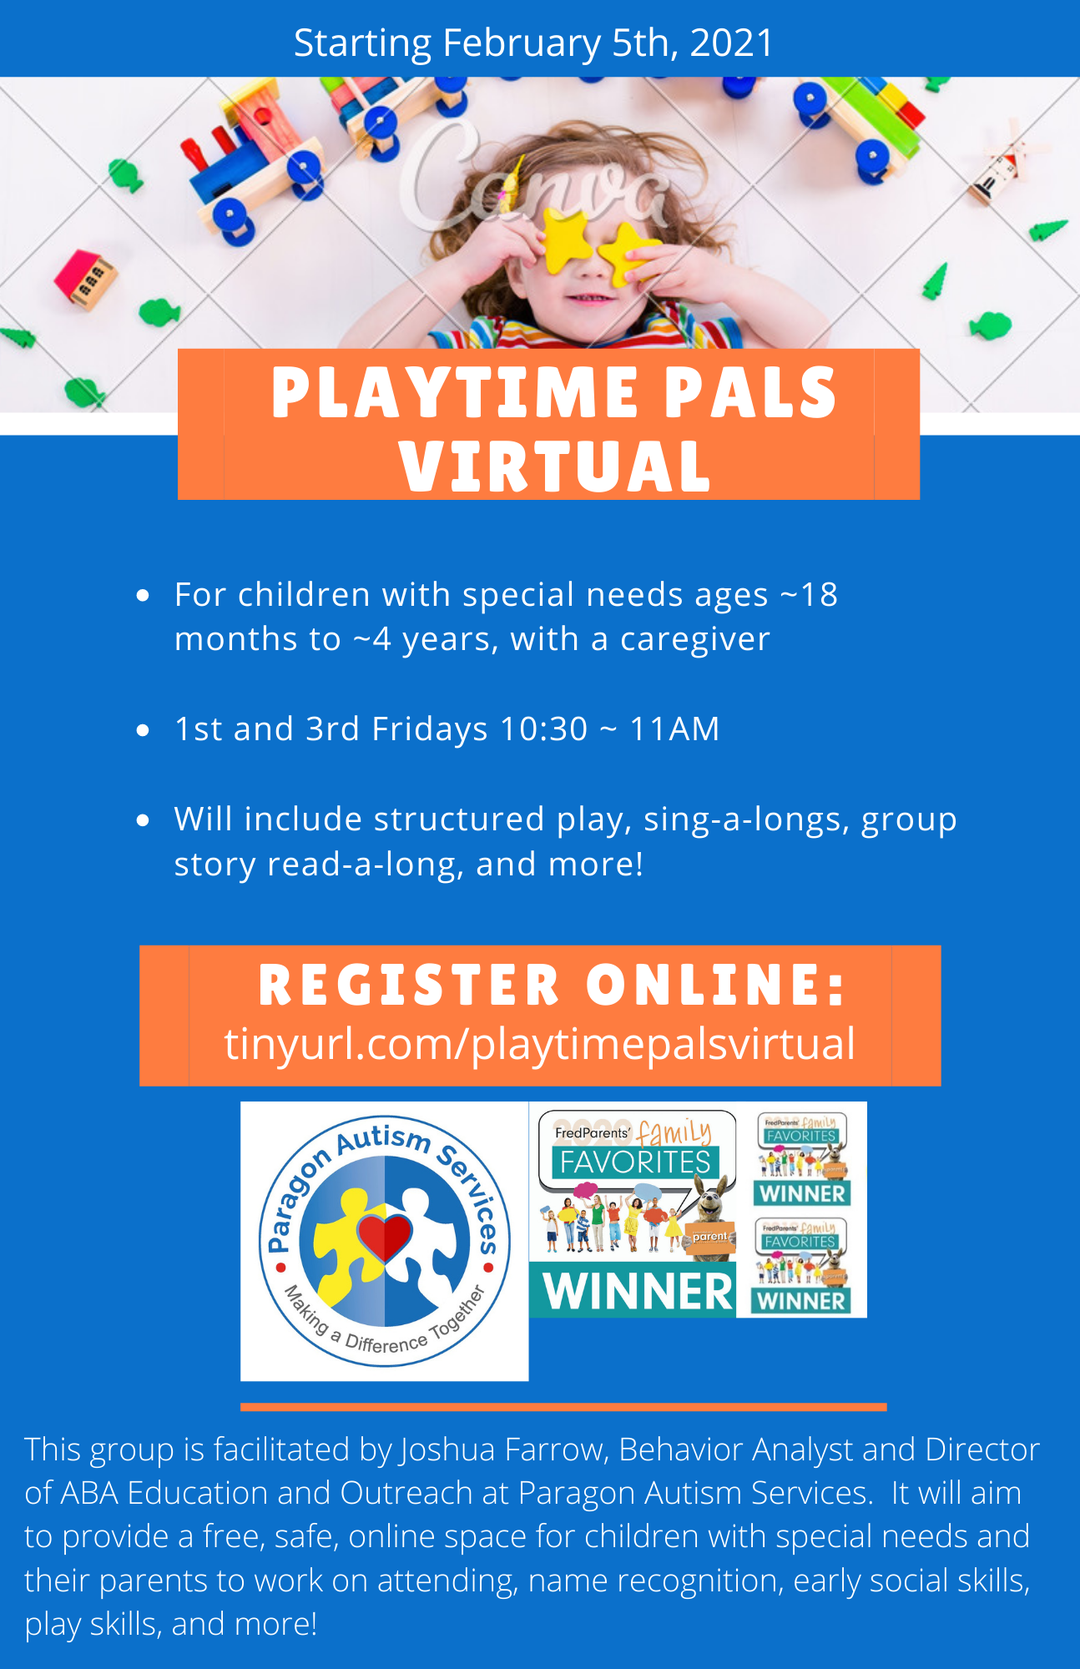 Playtime Pals Virtual